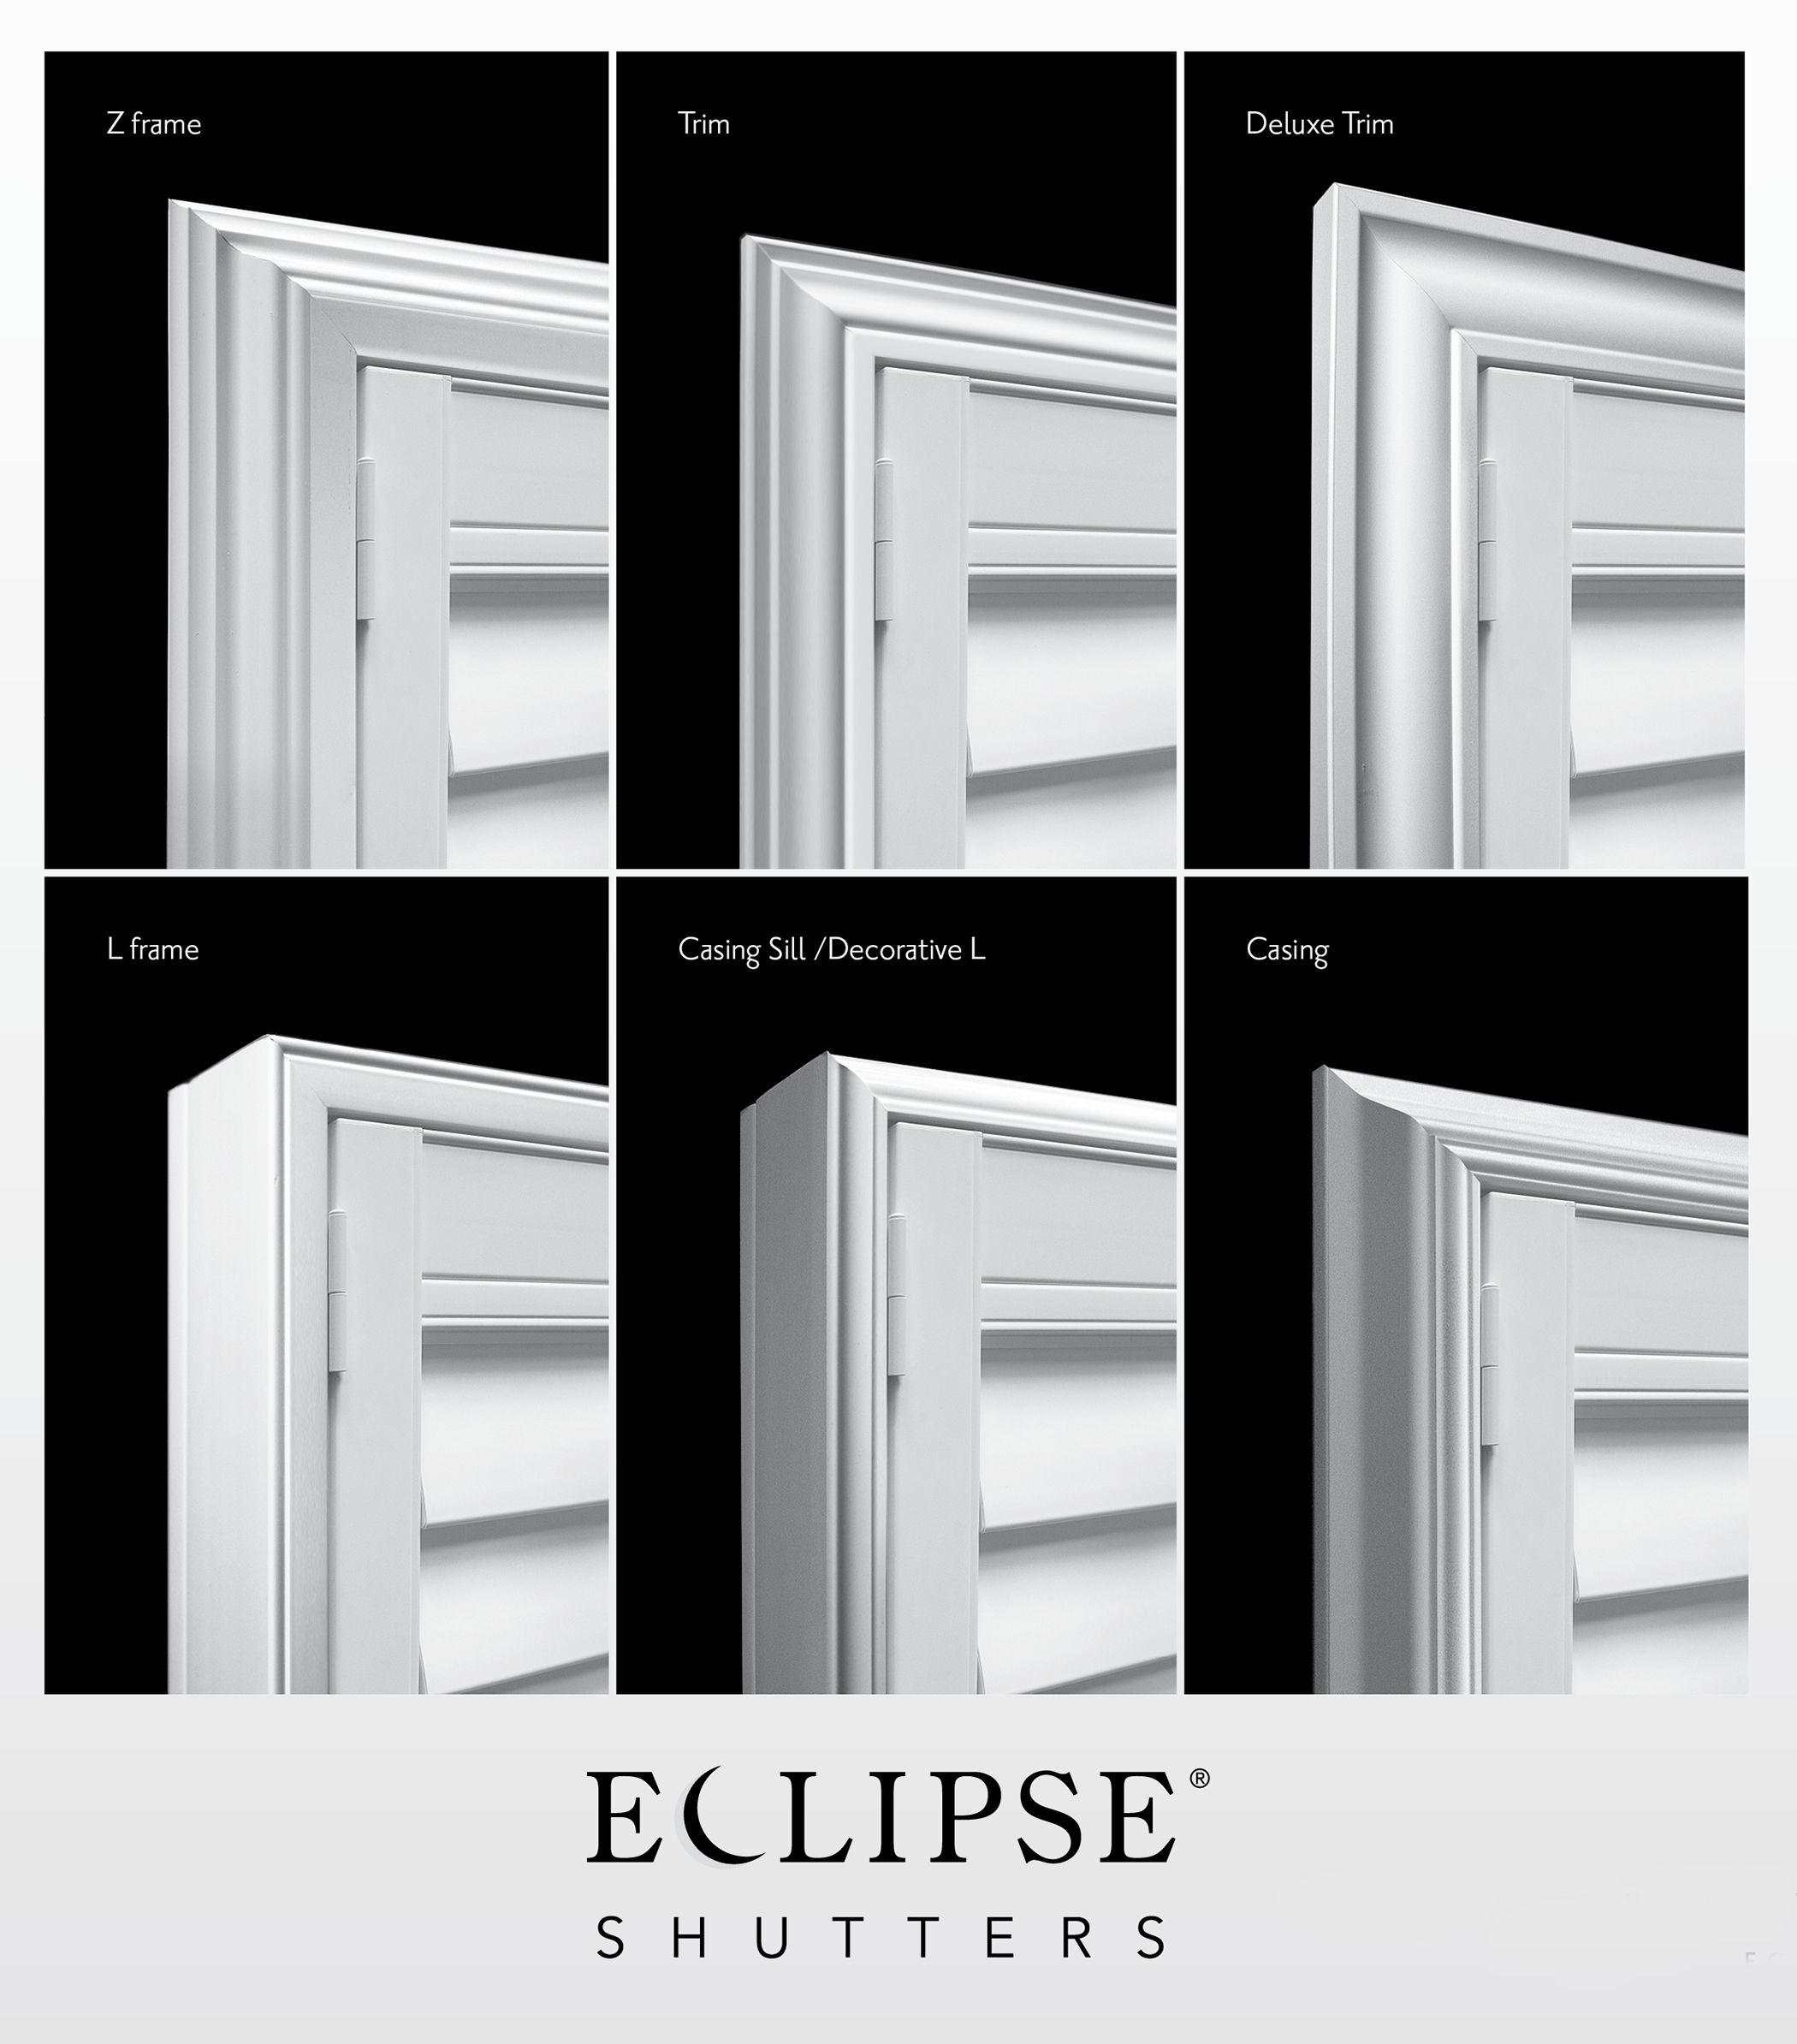 Perfect Frame for your Shutters - Eclipse Shutters DE74